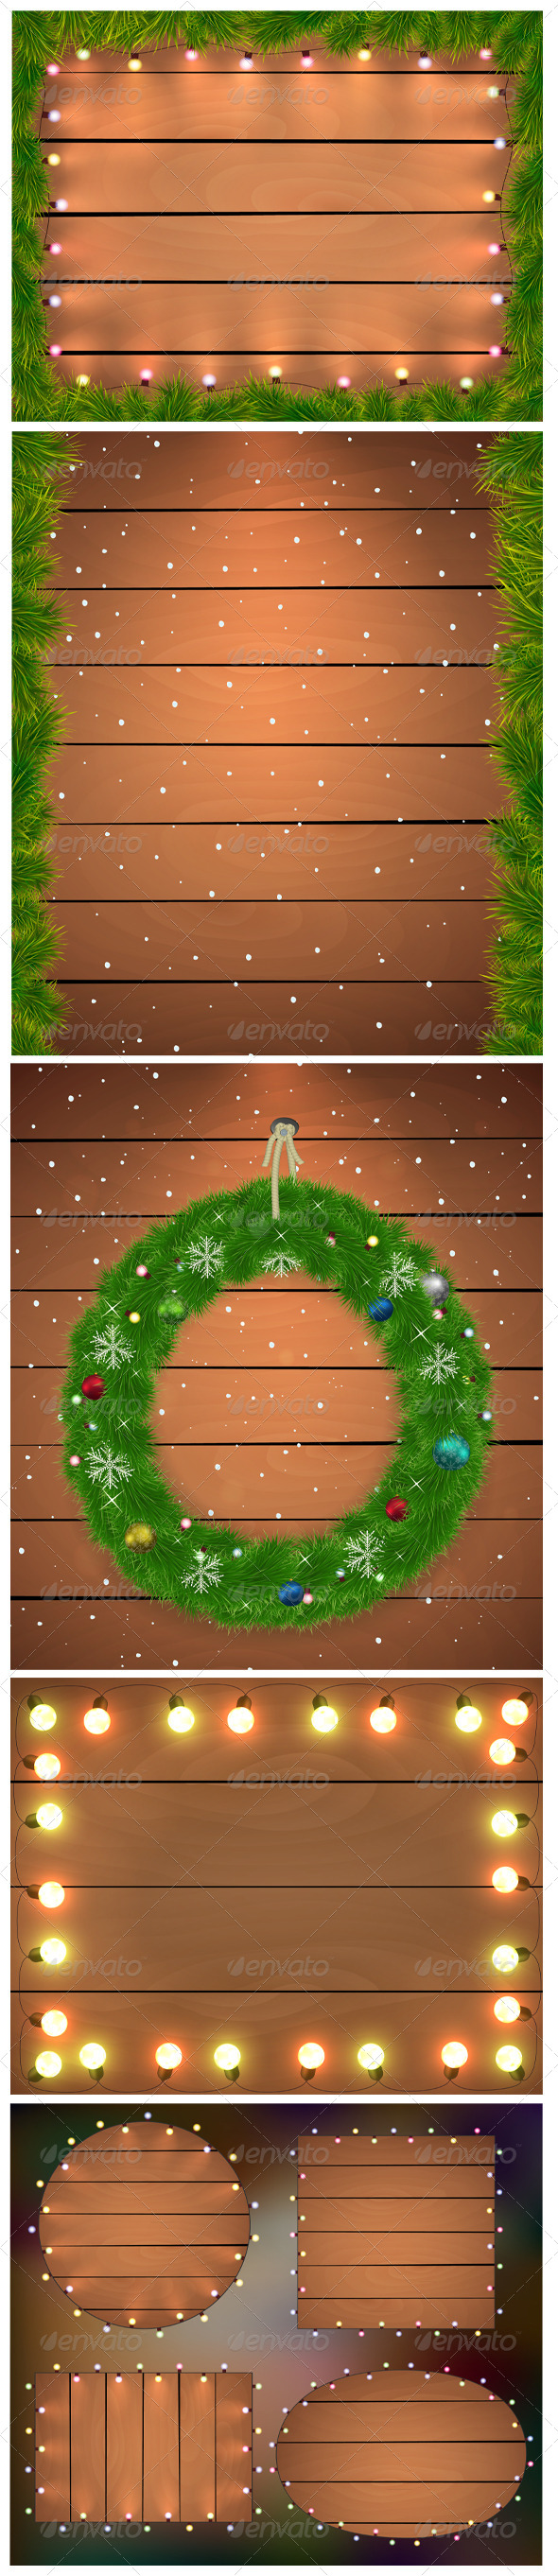 Christmas Backgrounds.  - Christmas Seasons/Holidays